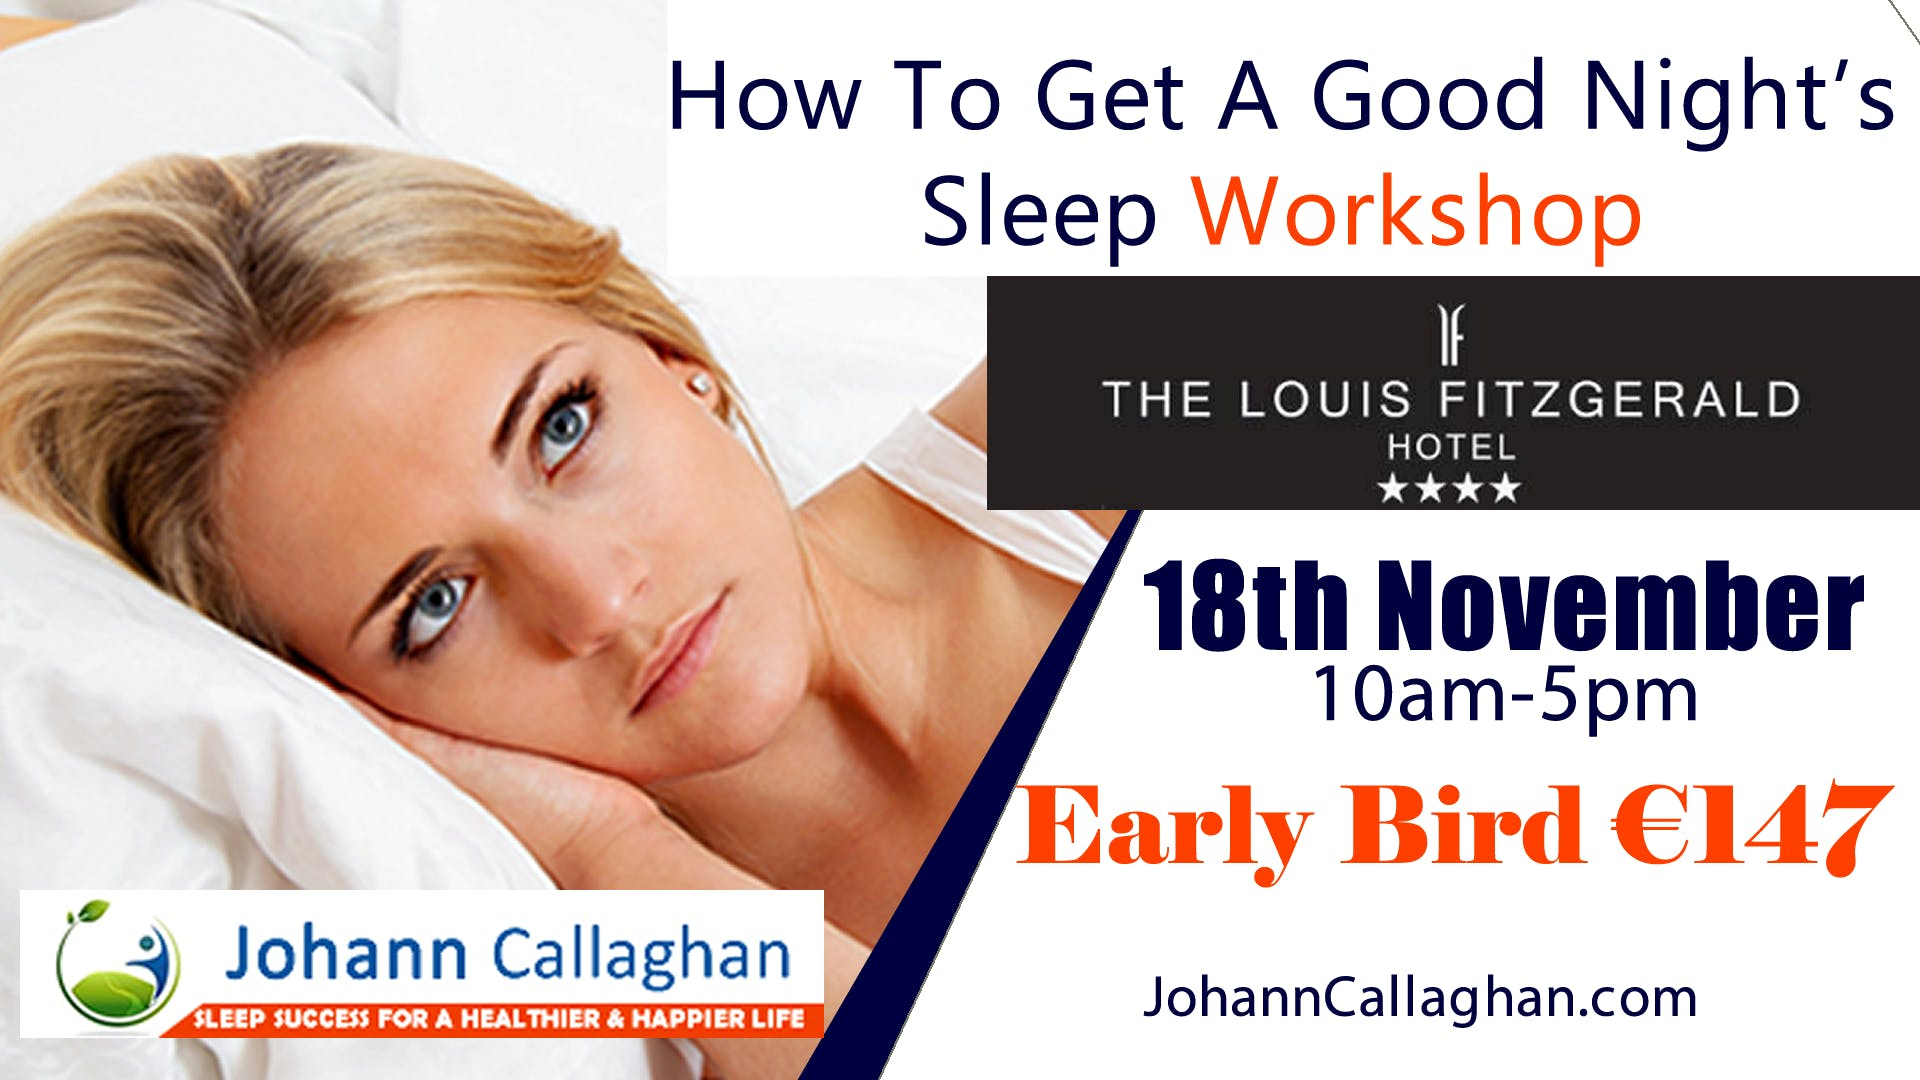 How To Get A Good Night's Sleep Workshop